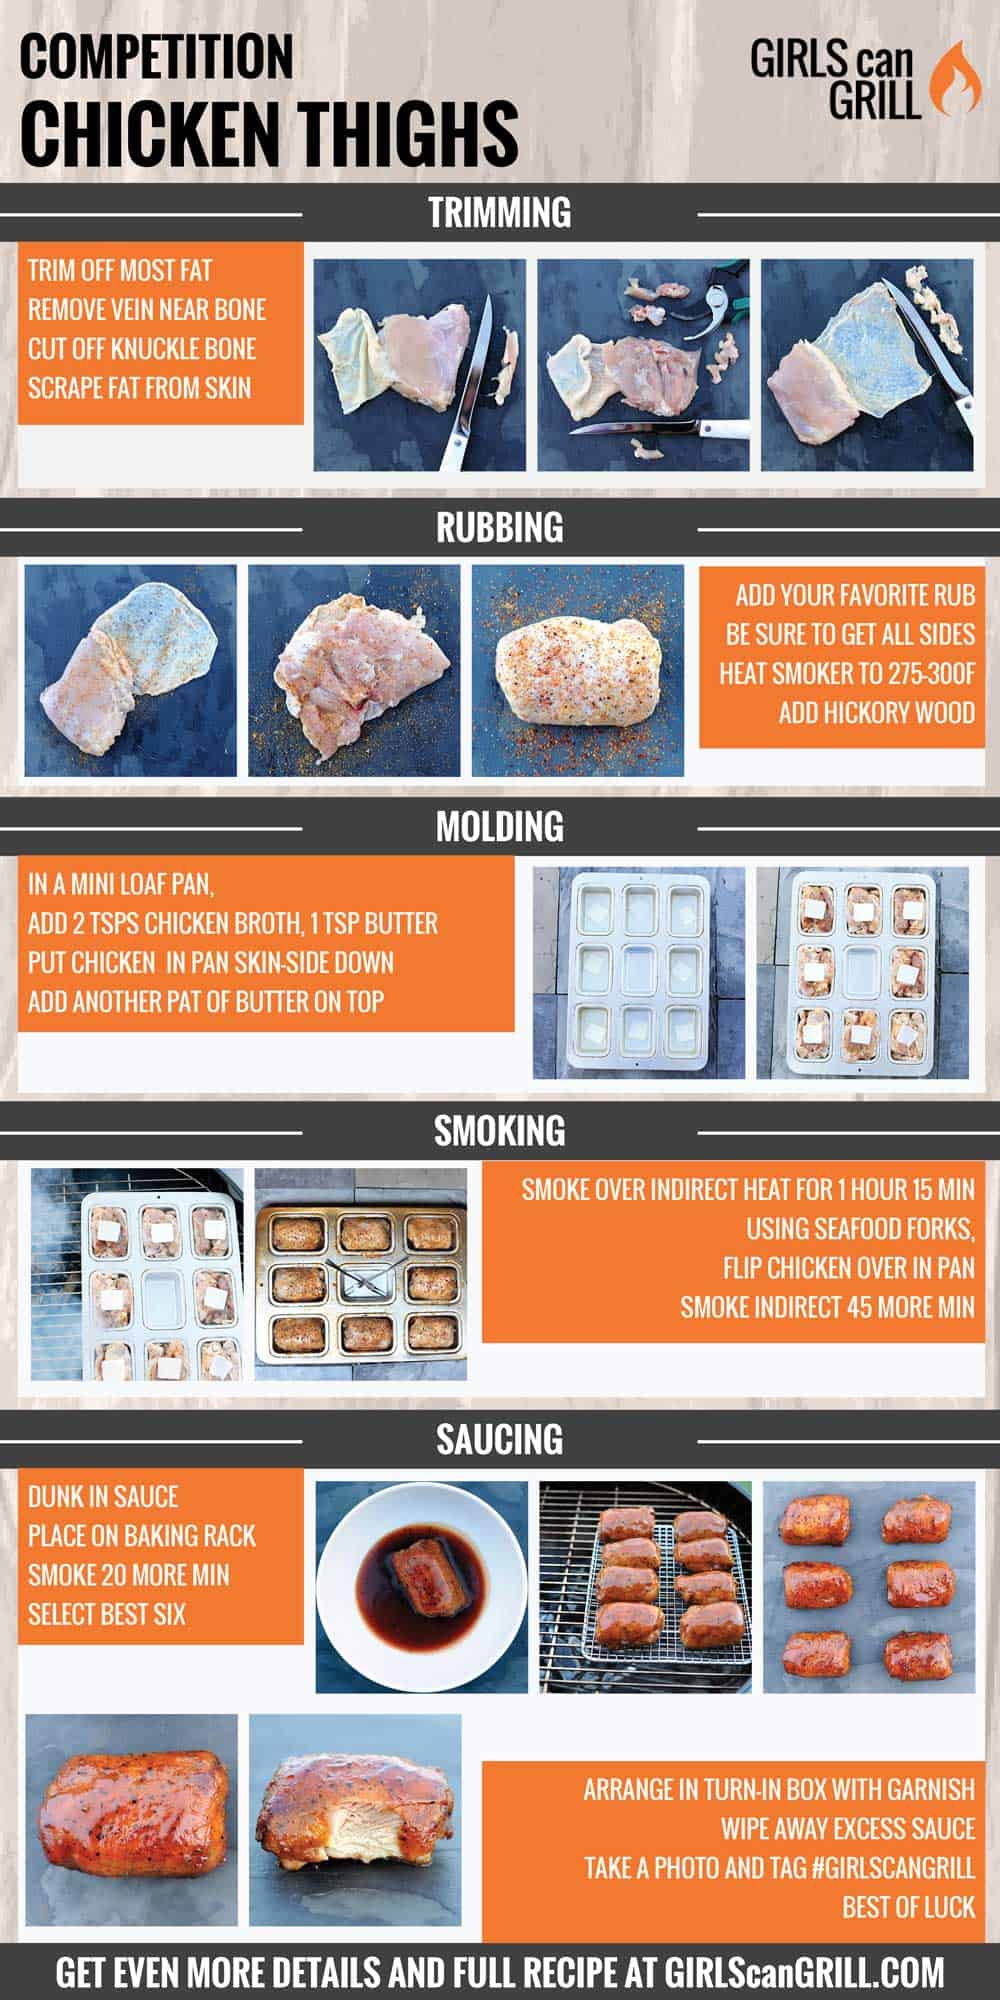 0f7438f23e84 infographic showing step-by-step photos for competition chicken thighs